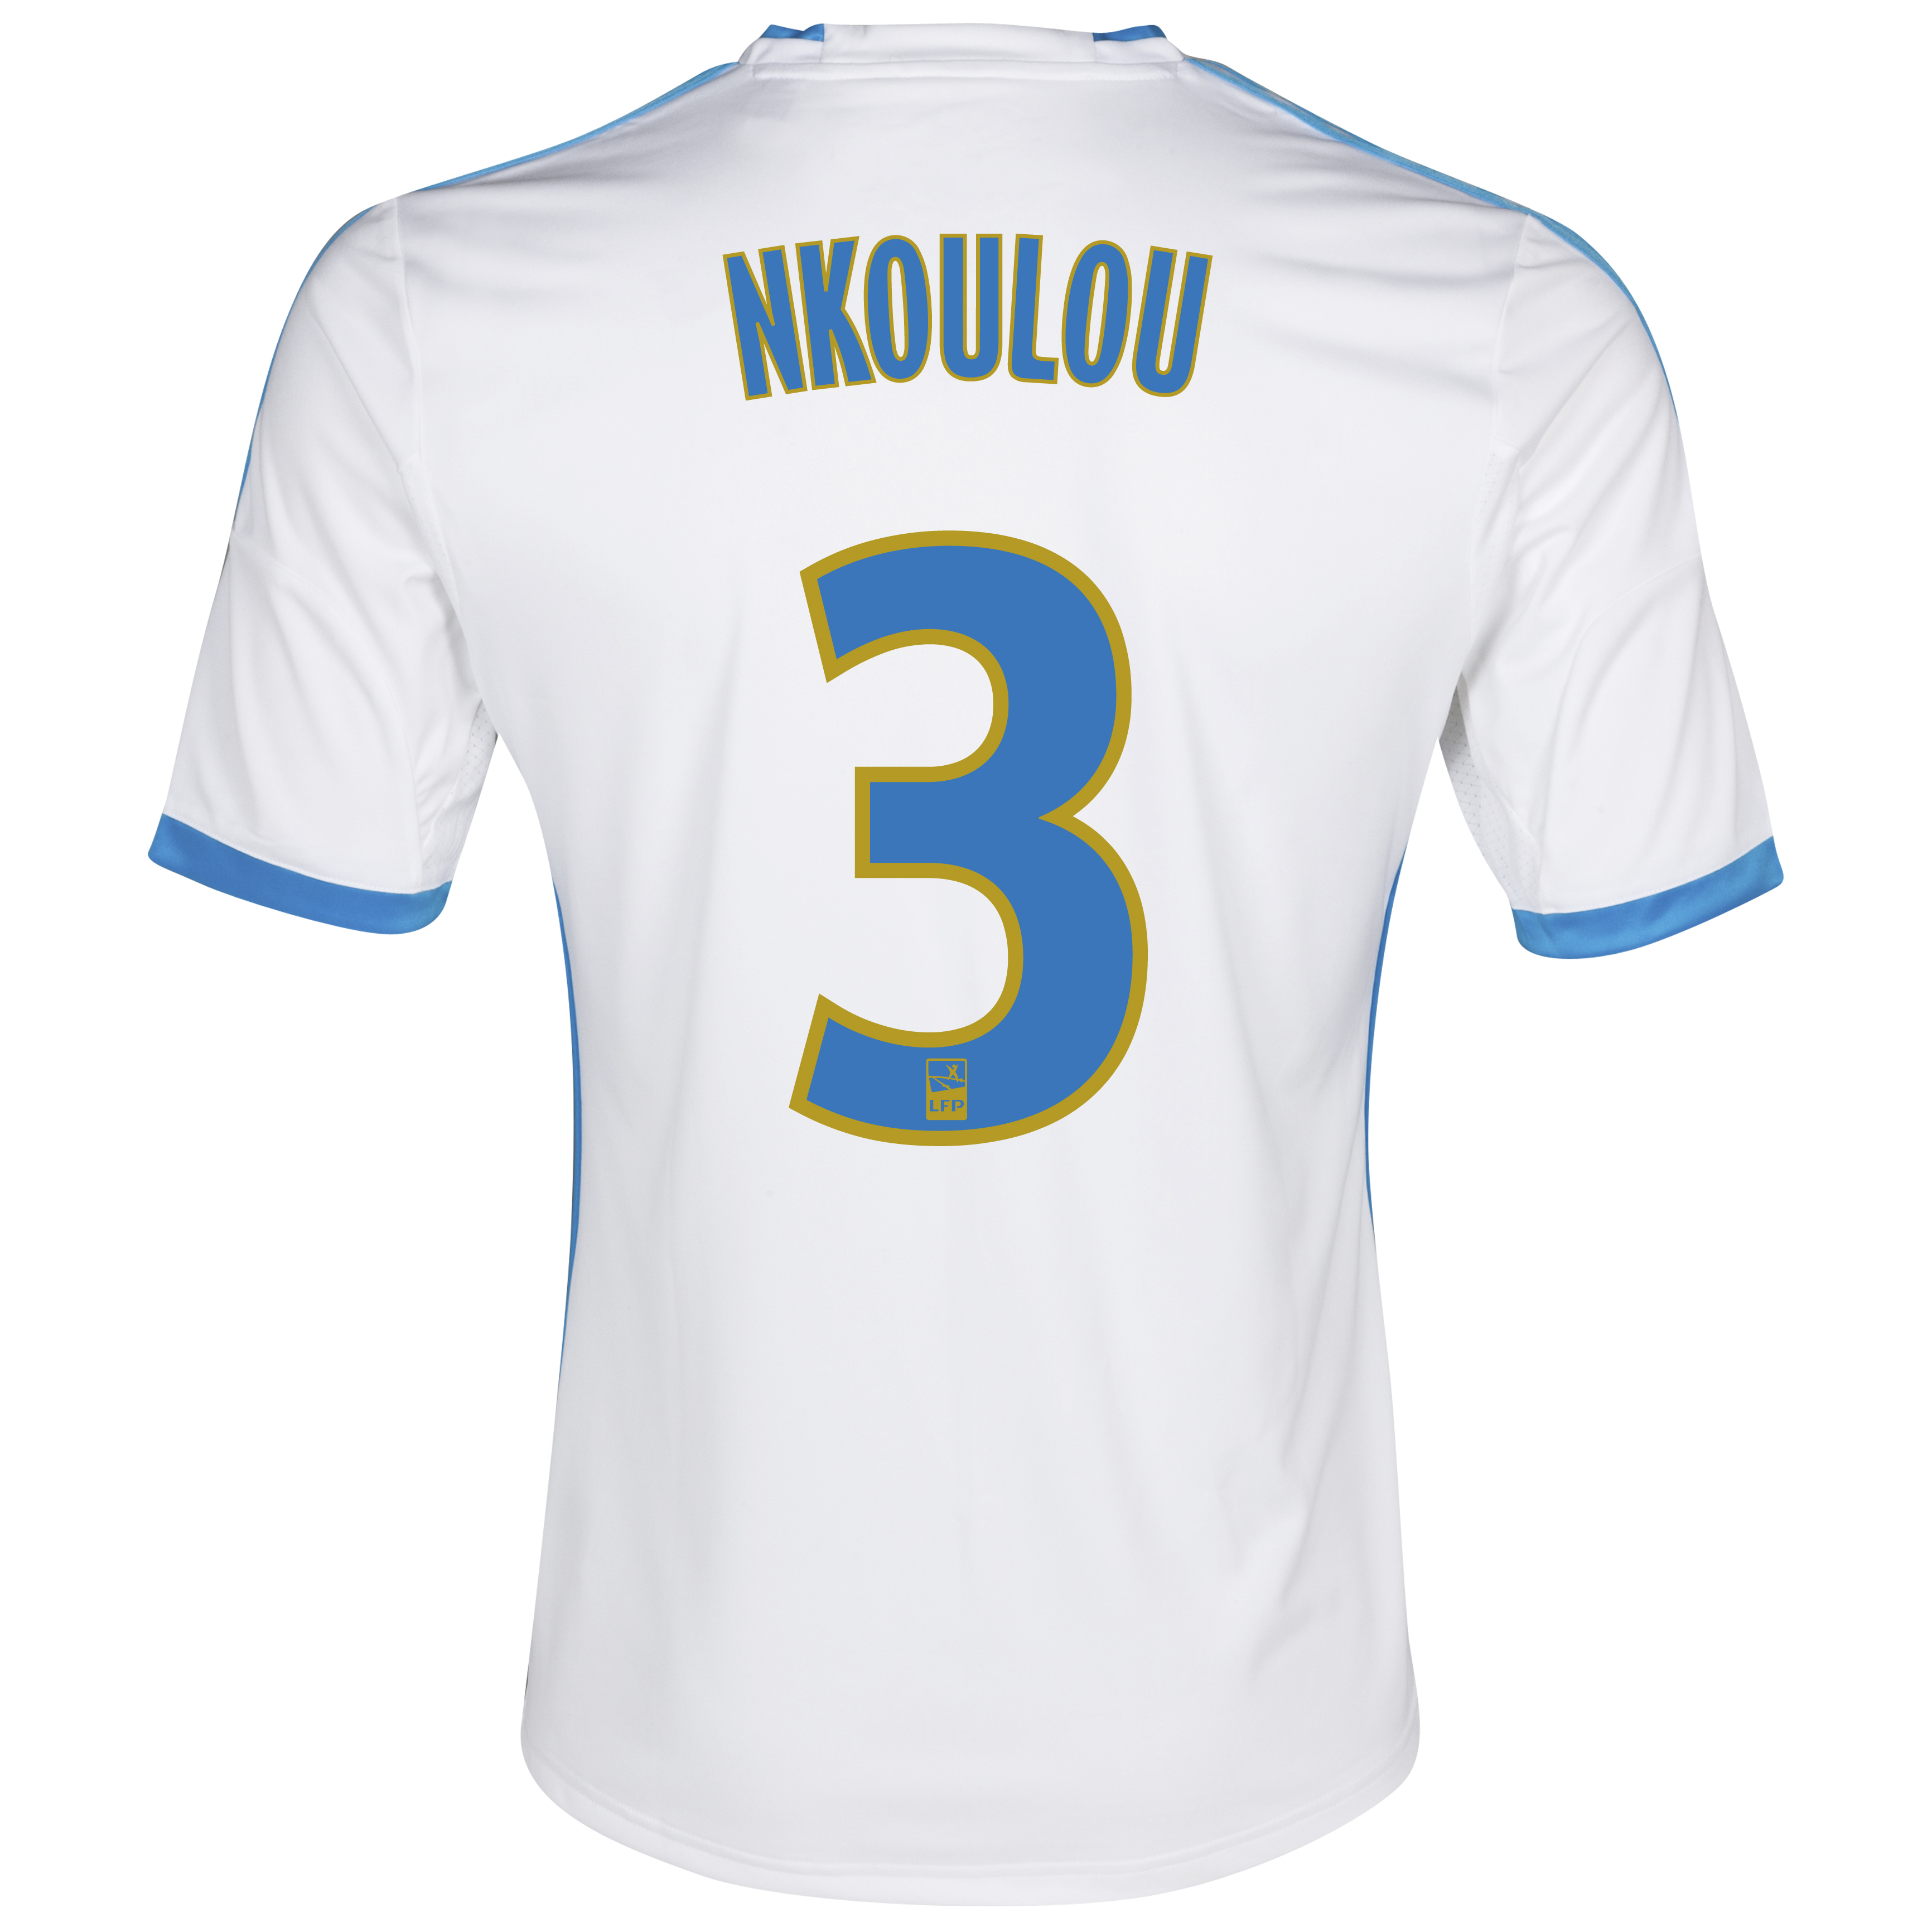 Olympique De Marseille Home Shirt SS 2013/14 - Mens White with Nkoulou 3 printing